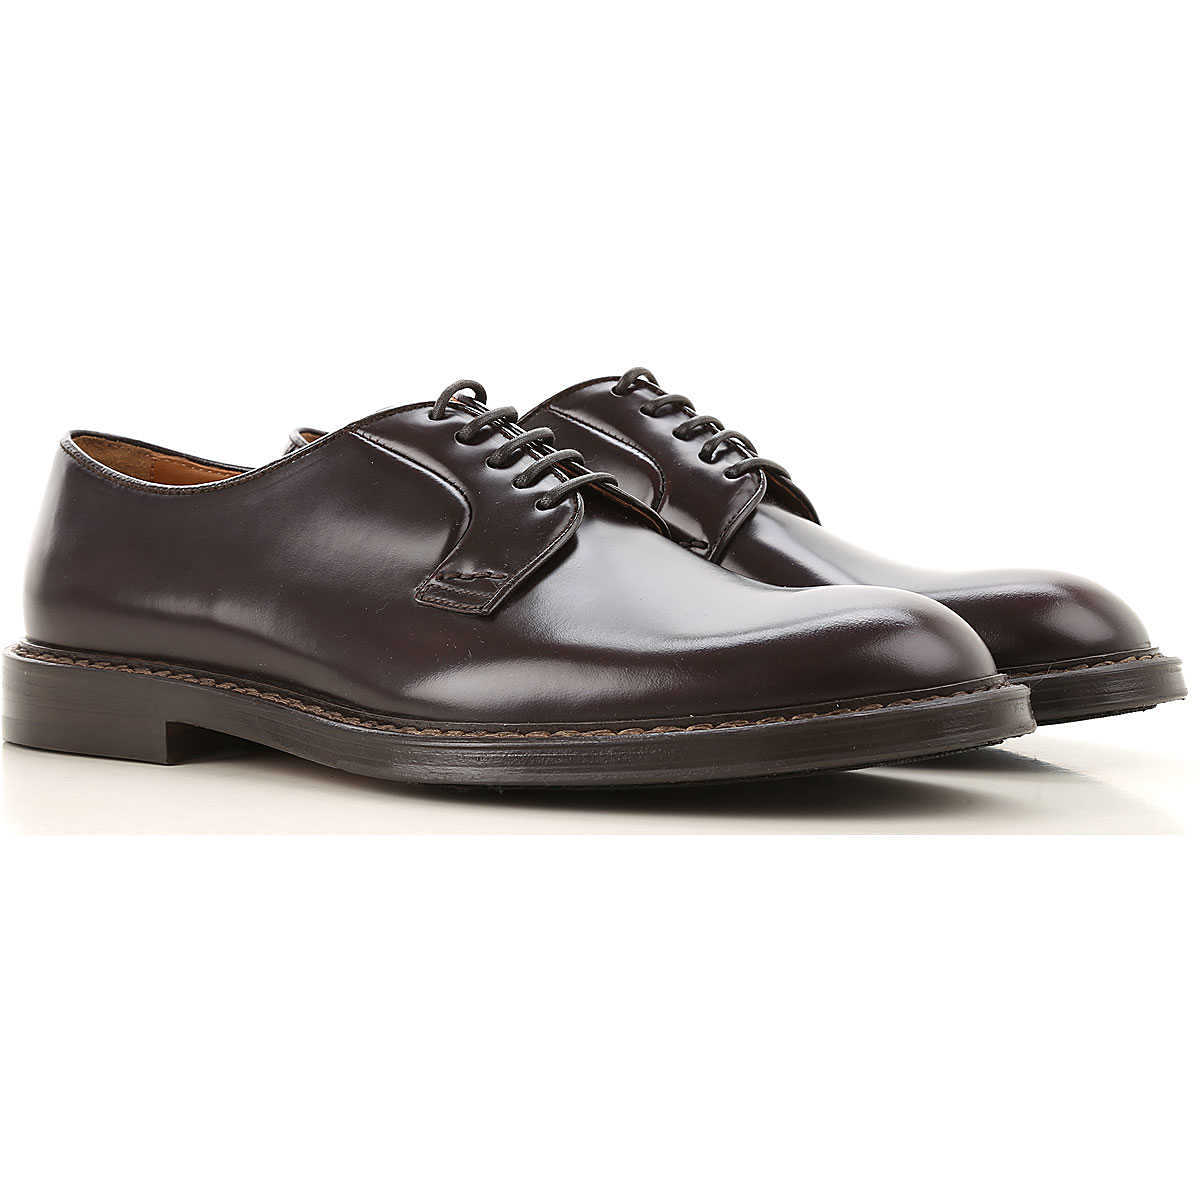 Doucals Lace Up Shoes for Men Oxfords Derbies and Brogues - GOOFASH